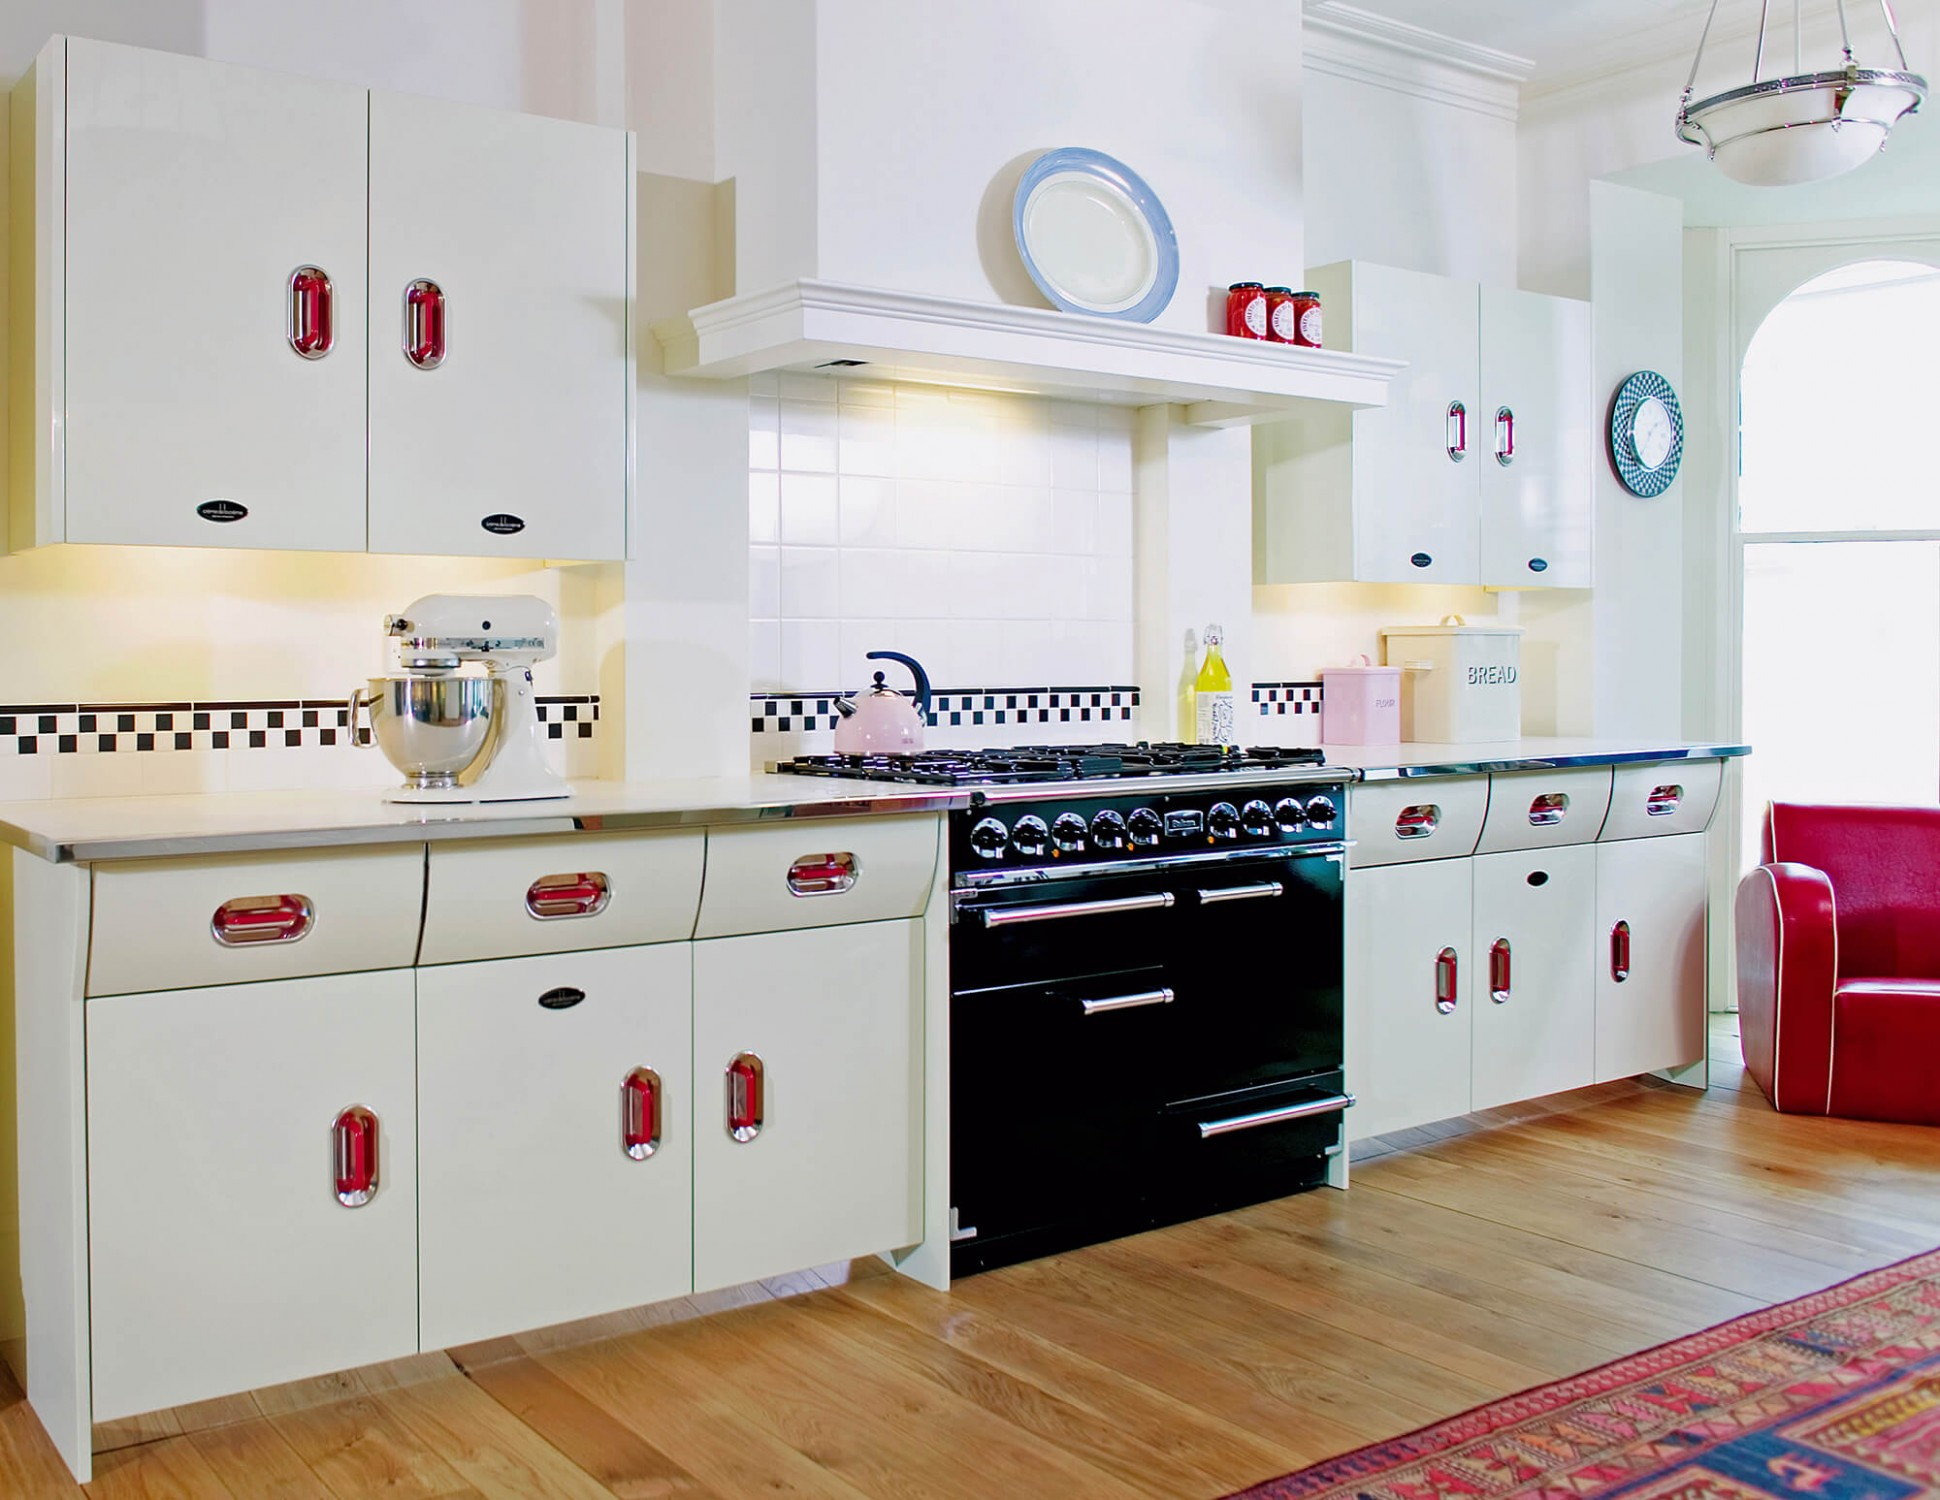 Bespoke Retro Style Kitchens  John Lewis of Hungerford - Free Standing Kitchen Cabinets John Lewis